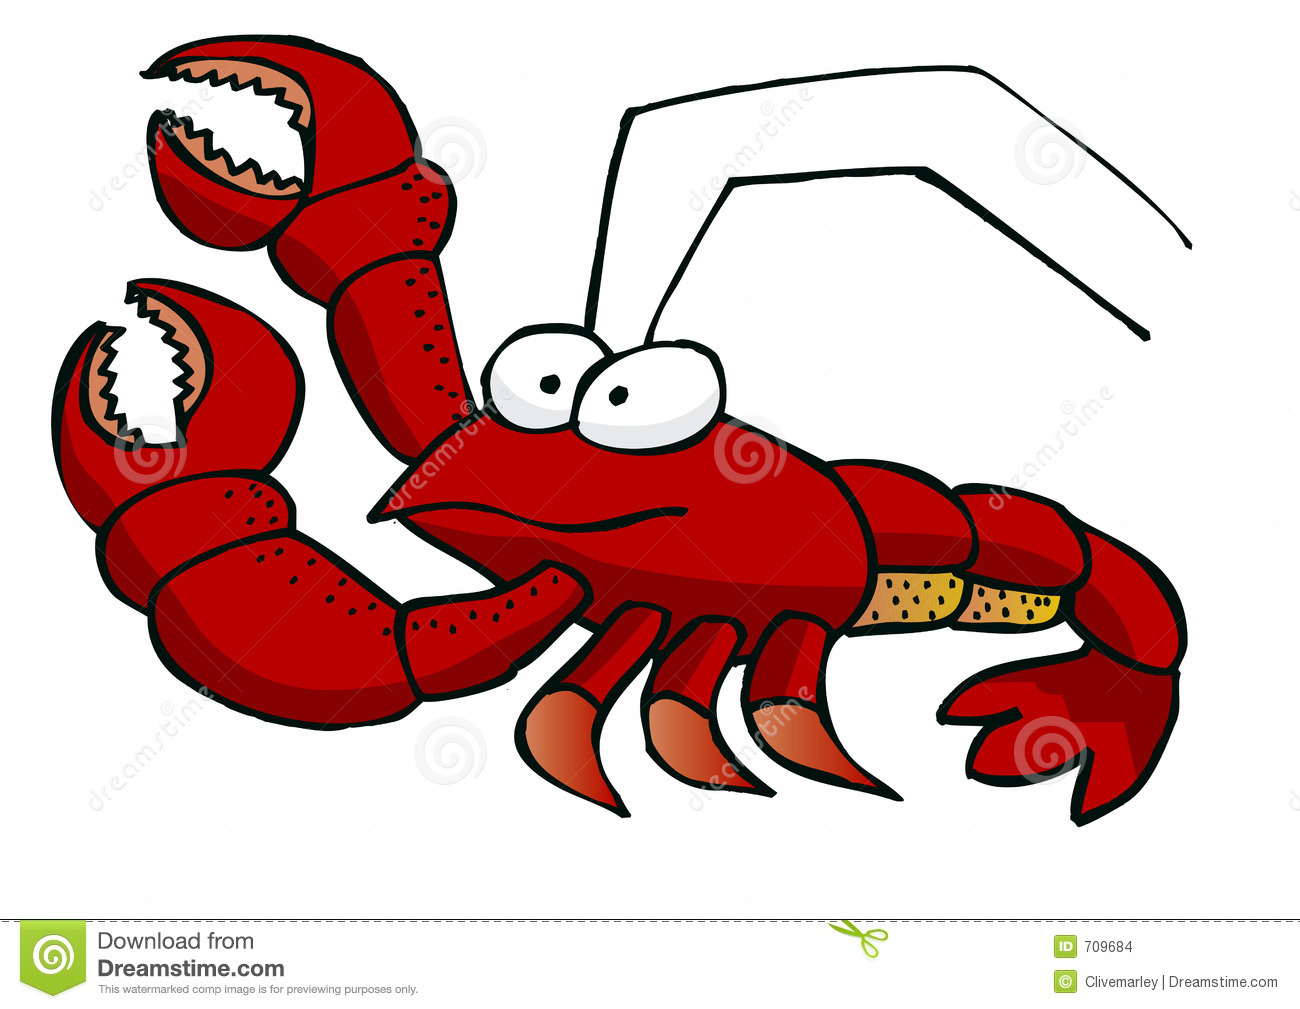 red lobster executive summary Guidelines for writing an executive summary an executive summary is a concise summary of a business report it restates the purpose of the report, it highlights the major points of the report, and it describes any results, conclusions, or recommendations from the report.